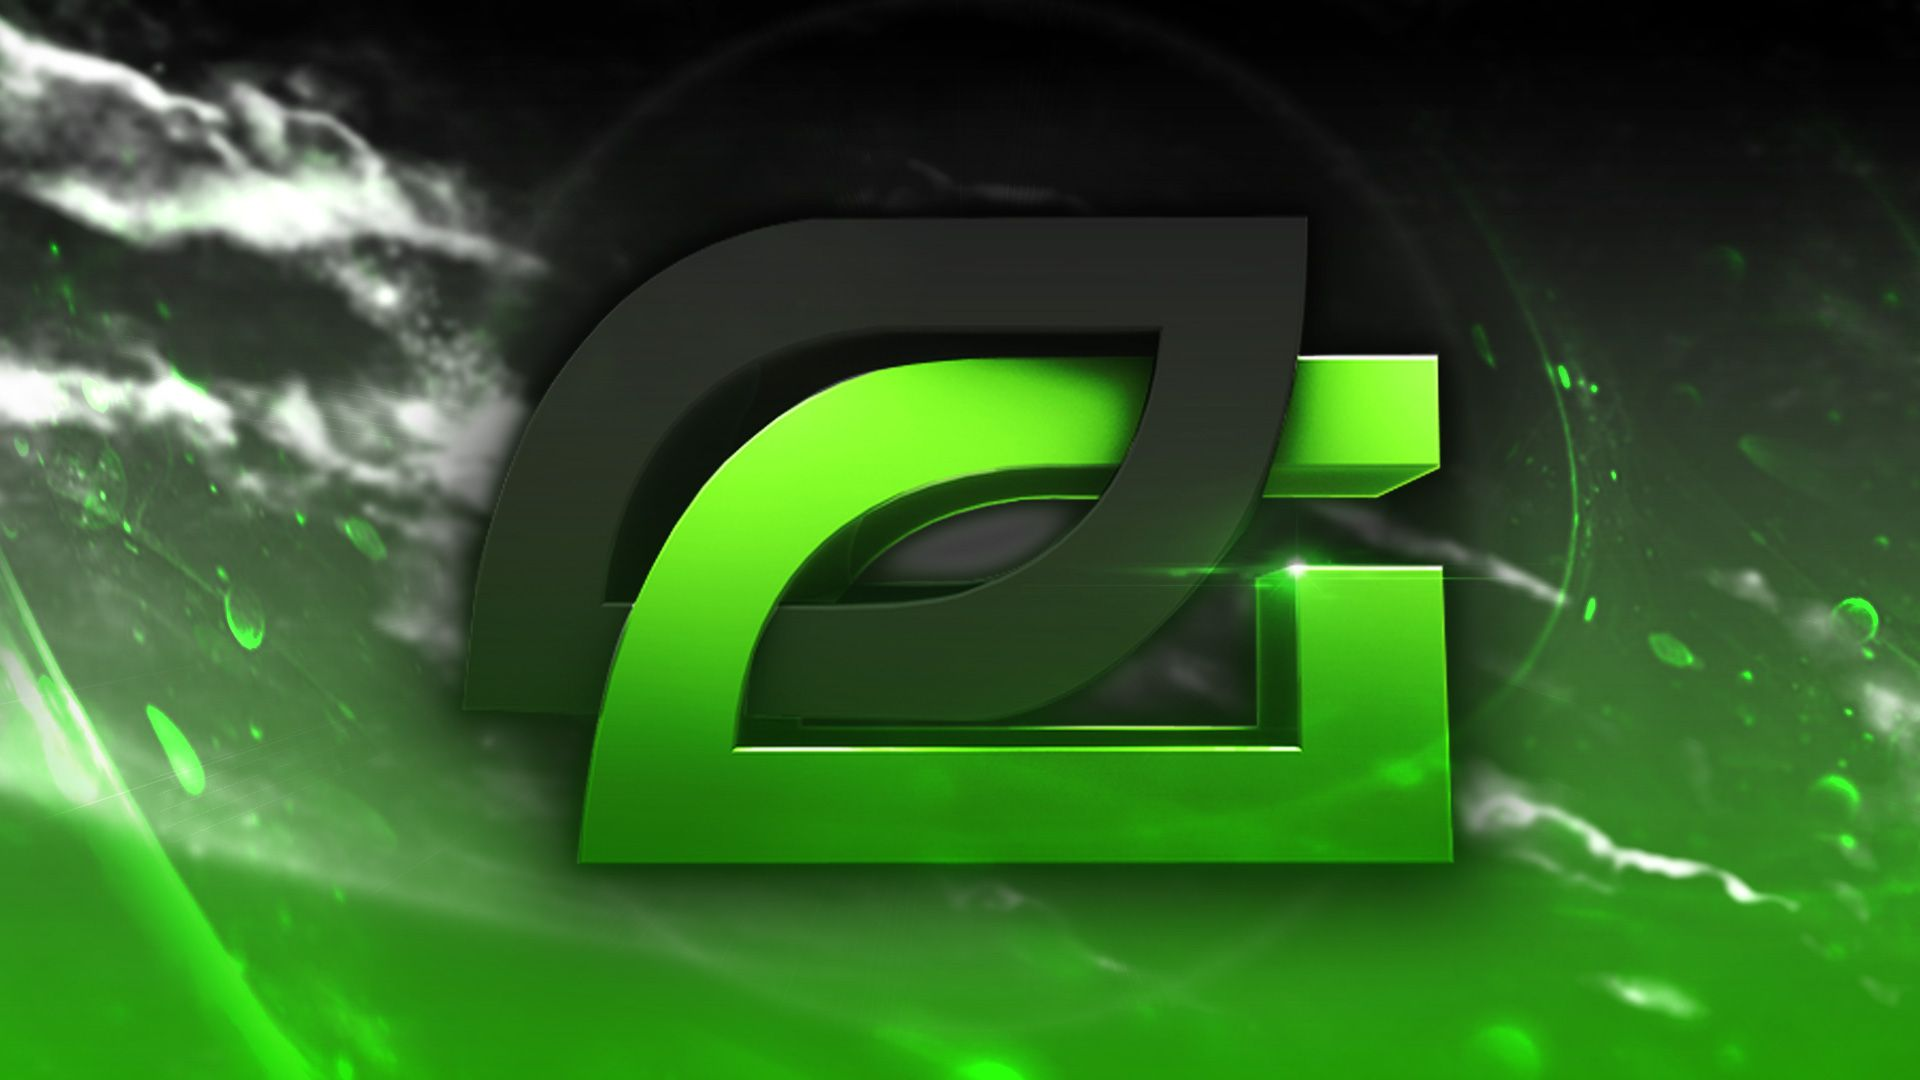 Optic Gaming Optic Gaming Full Hd Wallpaper Hd Wallpaper